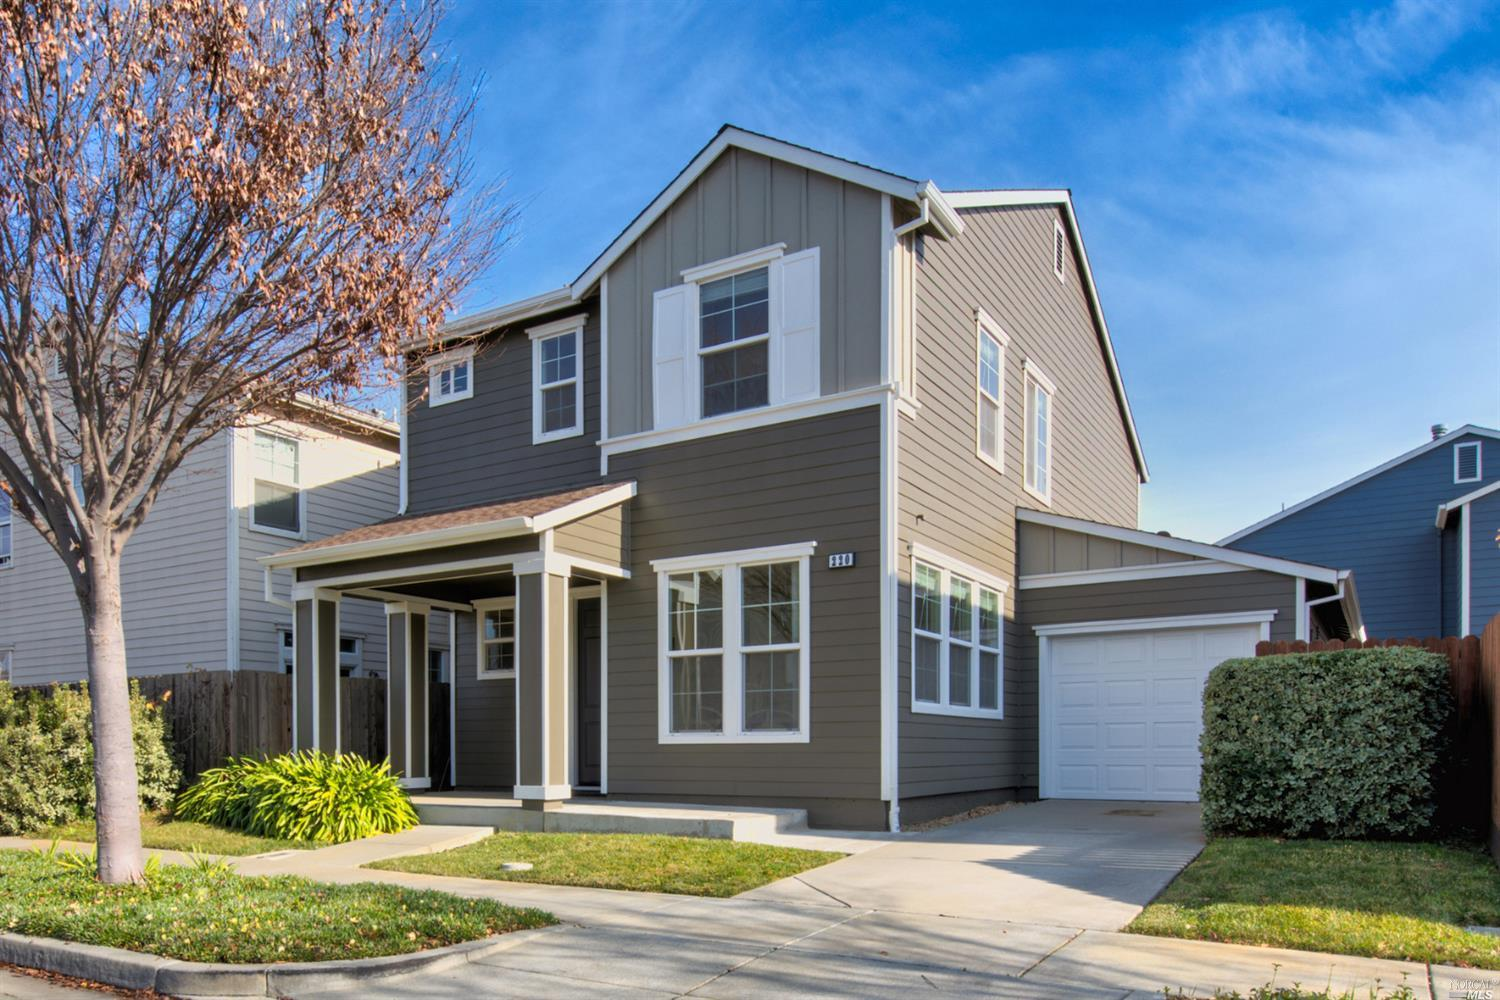 Gorgeous Suisun City home near the Marina!!This home bursts with curb-appeal and offers an open floor plan, a large chef's kitchen with plenty of cabinet space,2 Story home with 3 Bedrooms and 2.5 bathrooms in a desirable Area. Low maintenance back yard and a 2 car tandem garage!! Incredible Opportunity to own this Amazing home in a prime location close to shopping, HWY-12, I-80, and Travis AFB. Don't miss out on this great opportunity! Truly a must see!